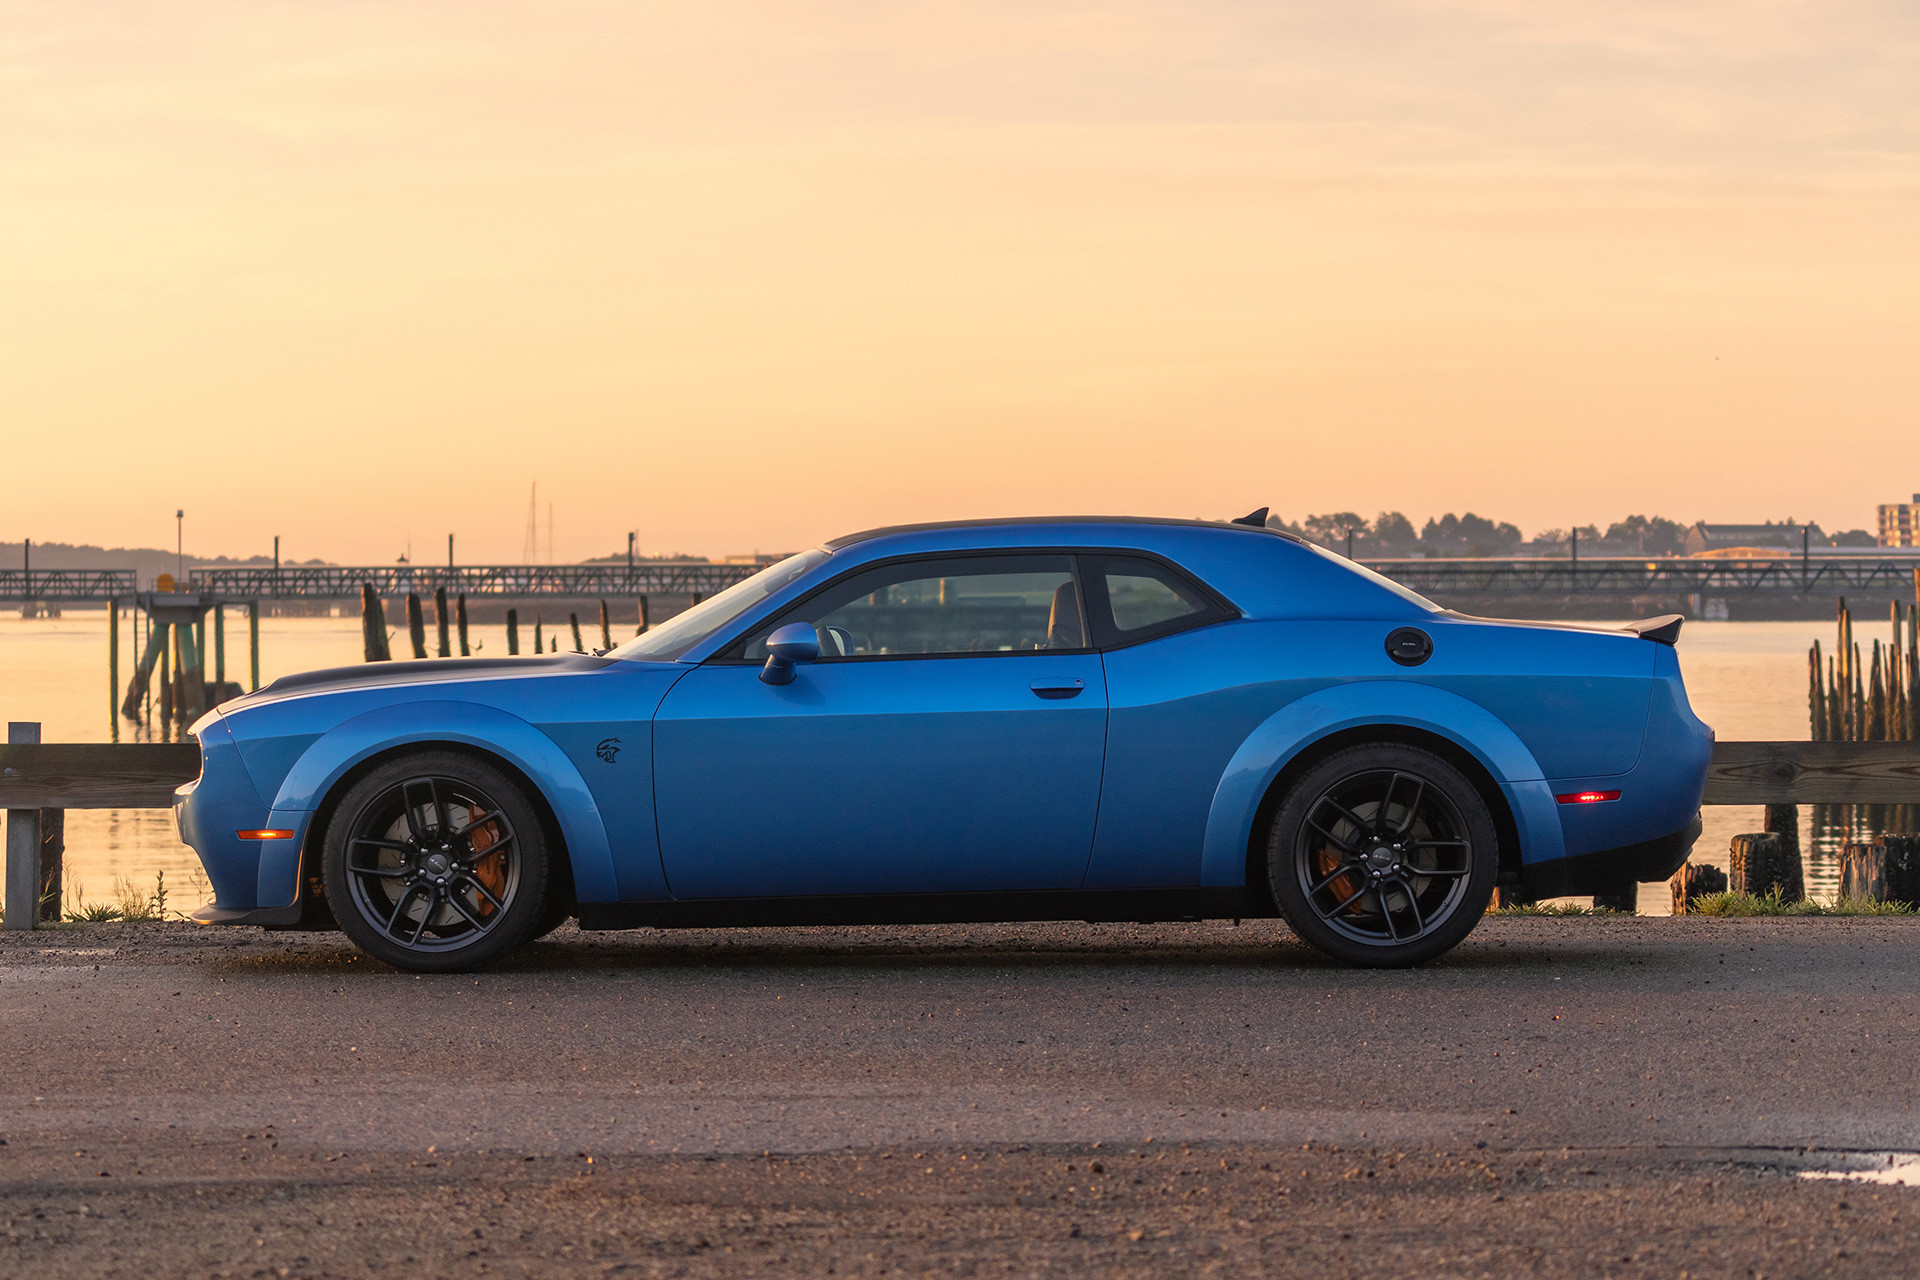 Dodge Challenger SRT Hellcat front view in desert shown in blue